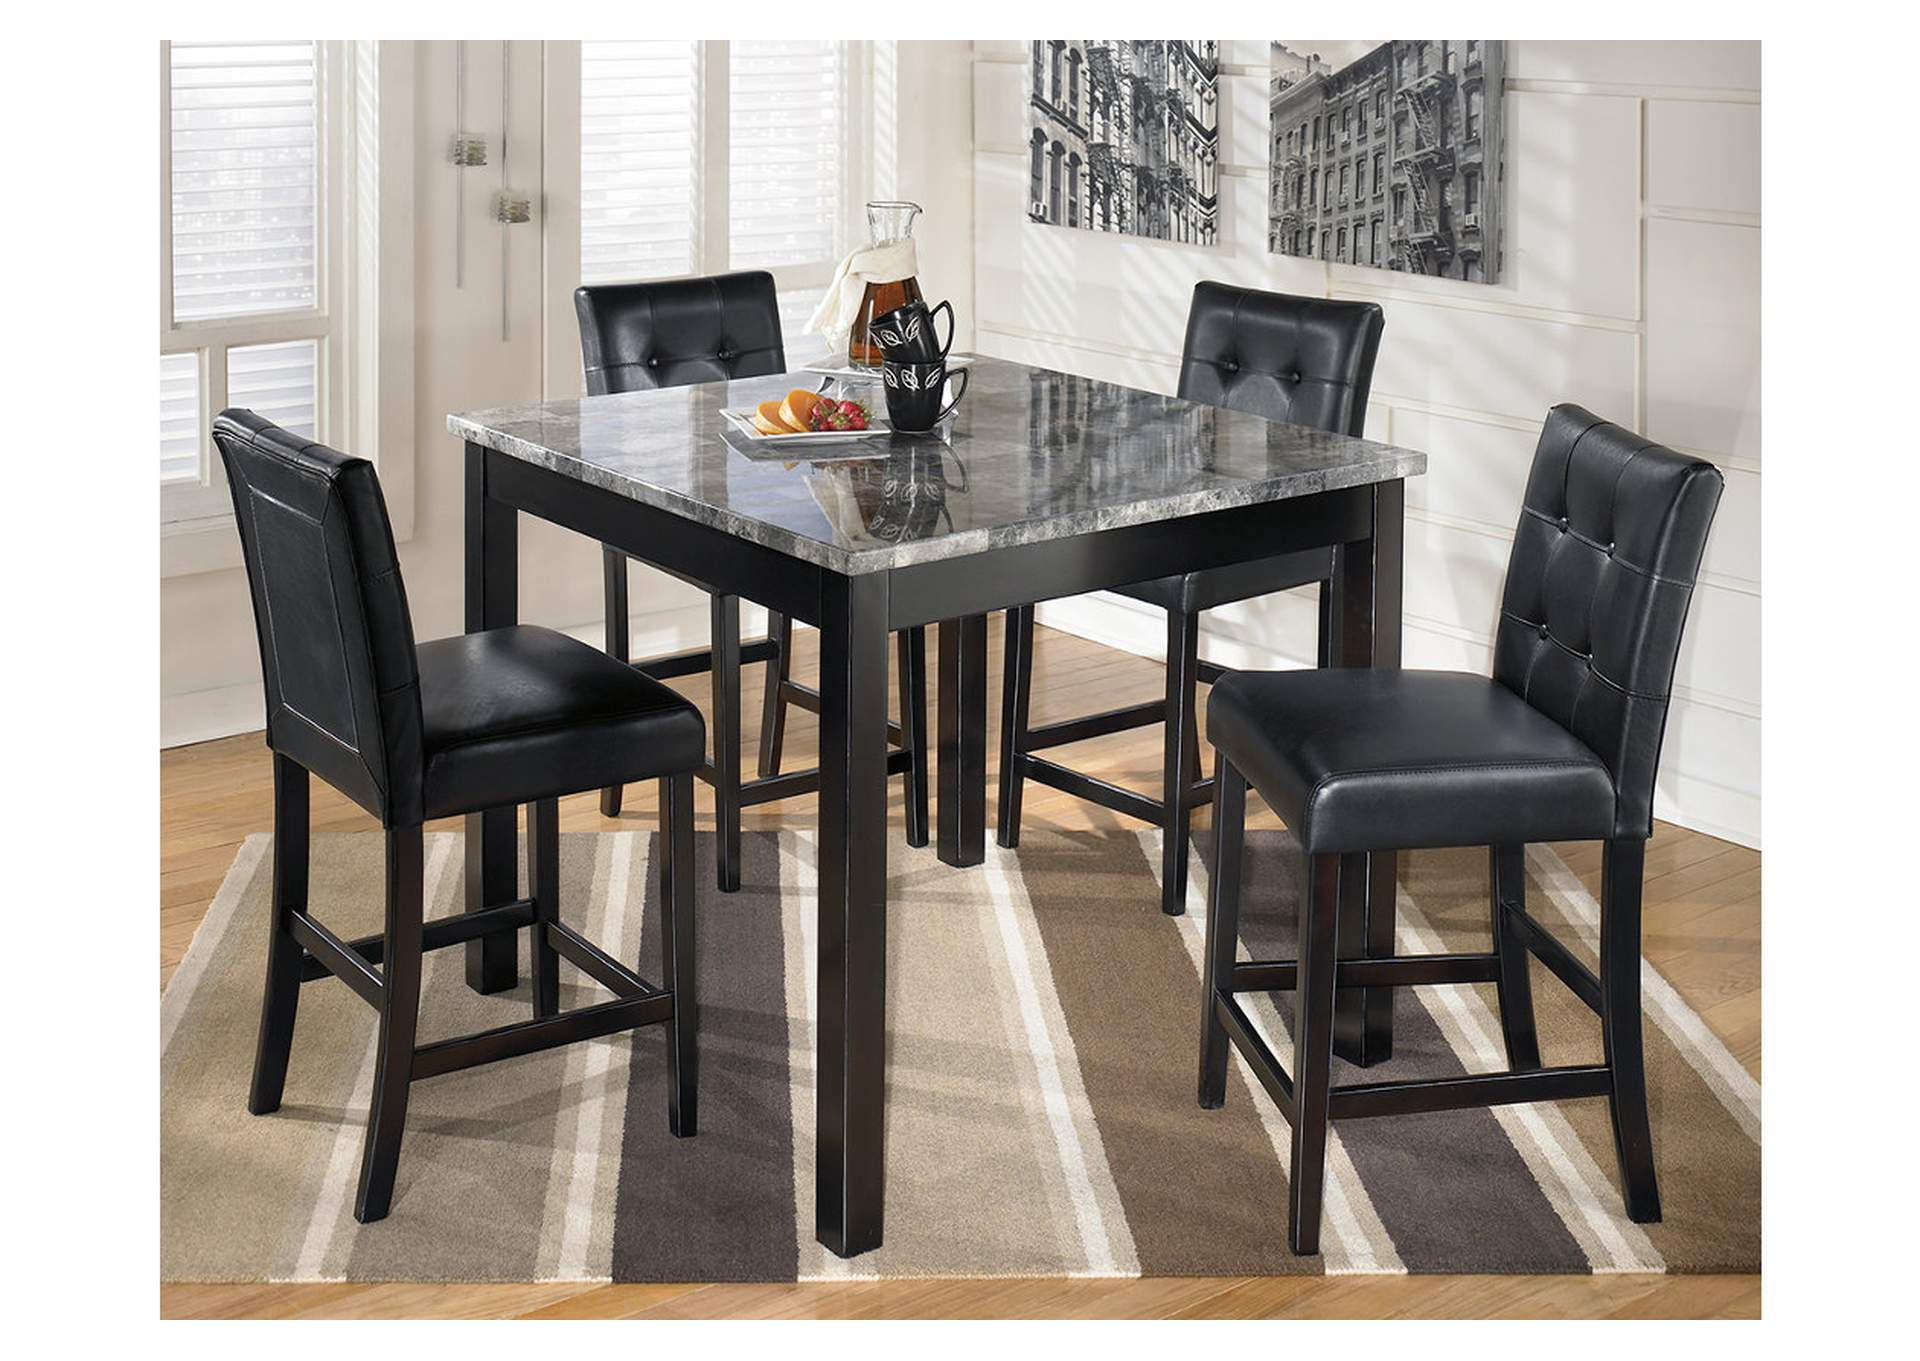 Maysville Square Counter Height 5 Piece Dining Set,Signature Design By Ashley